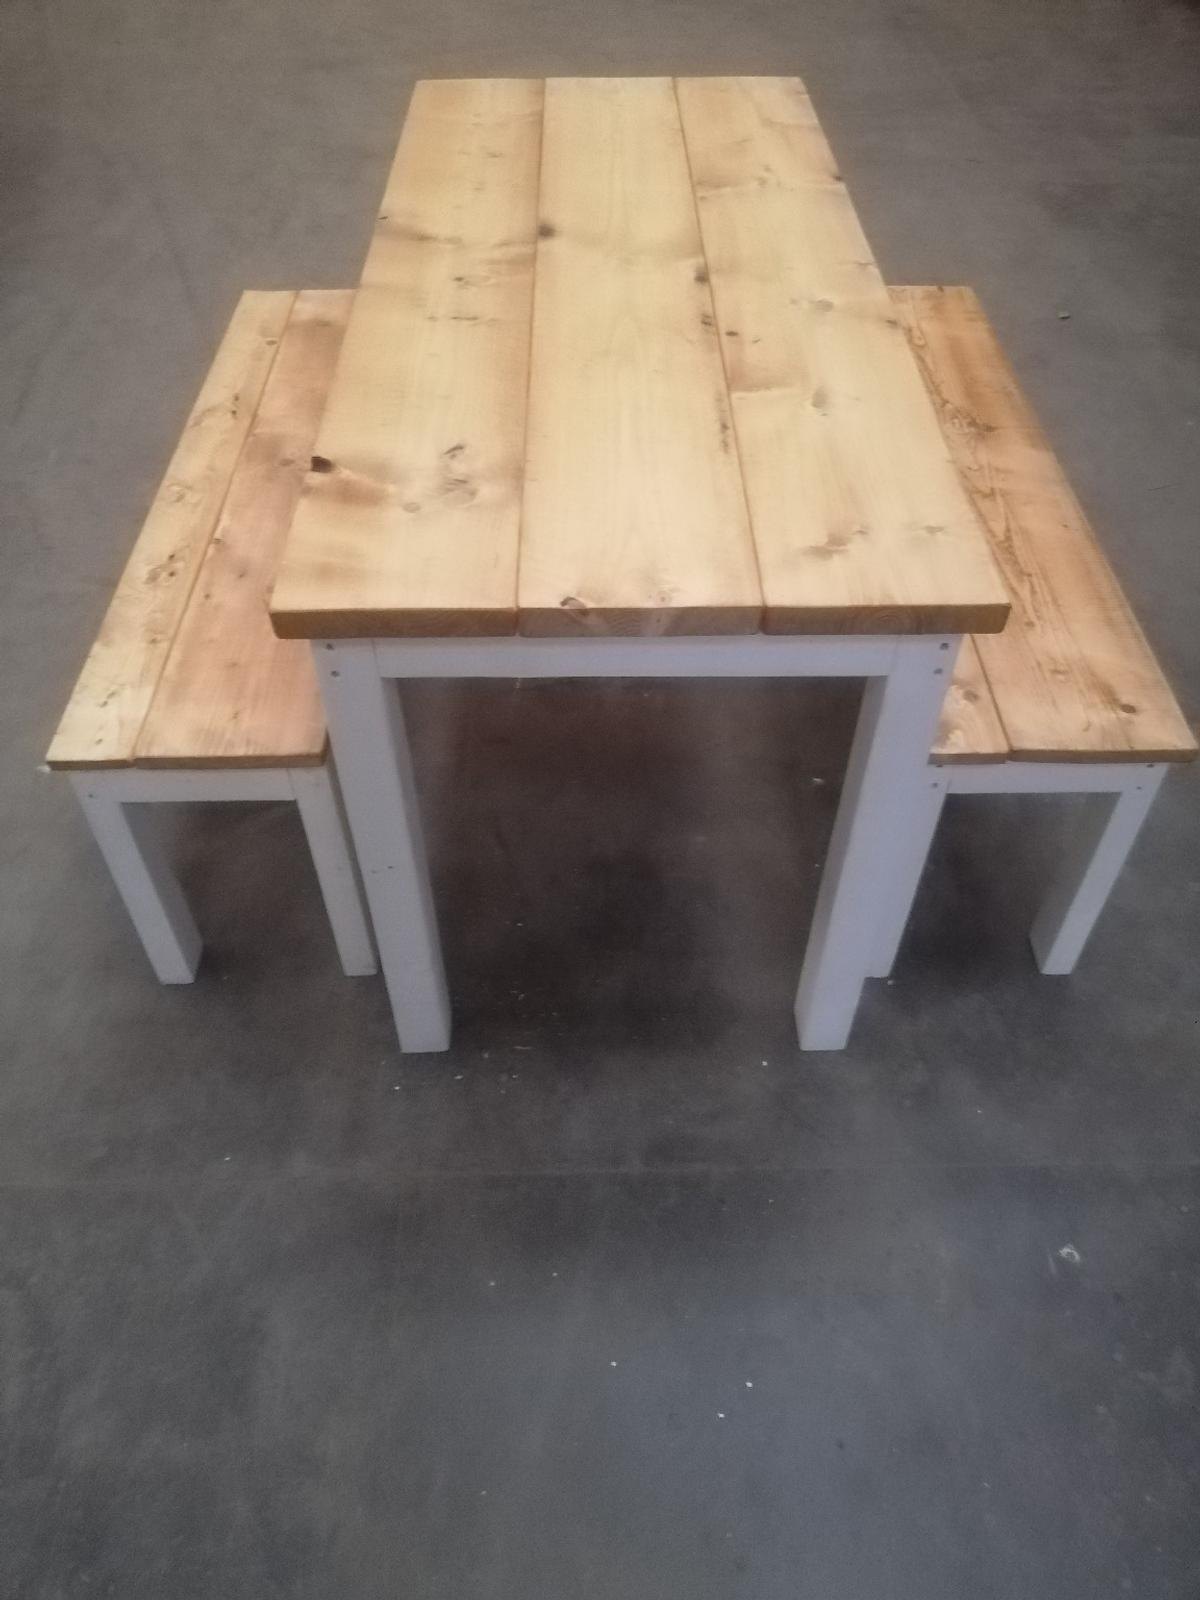 Rustic Farmhouse Dining Table And Bench Set In Stoke On Trent For 220 00 For Sale Shpock